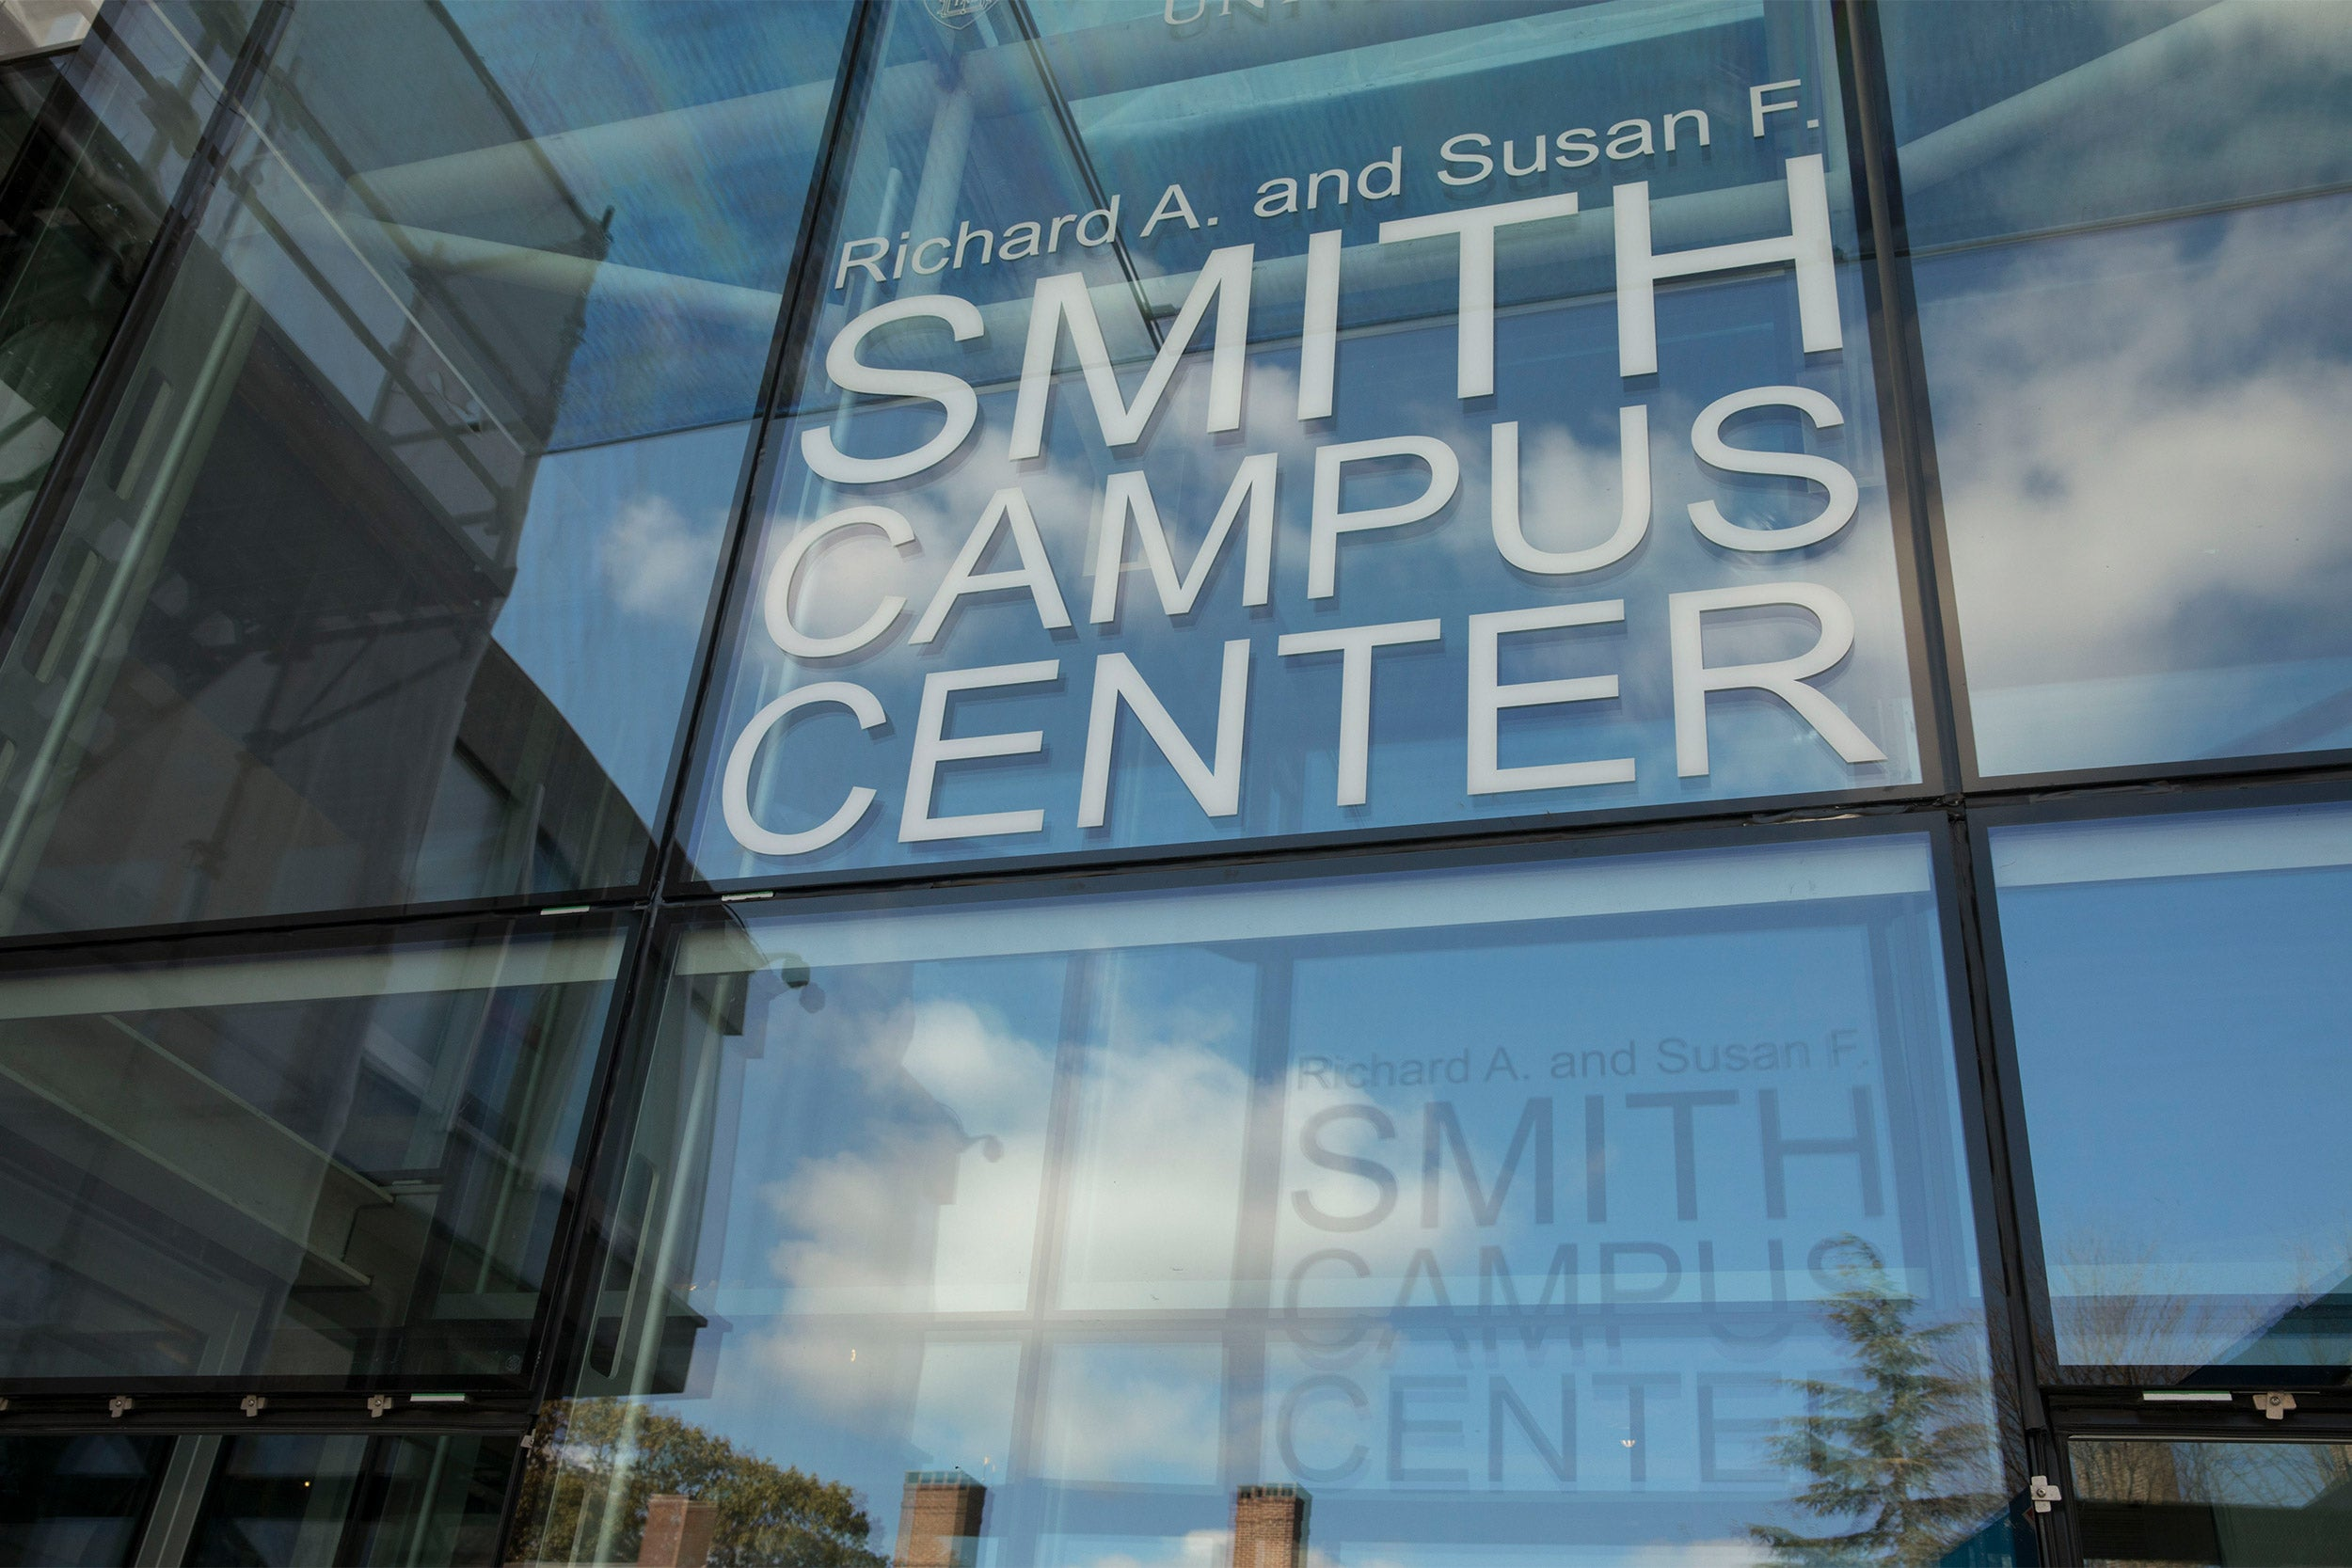 Smith Campus Center